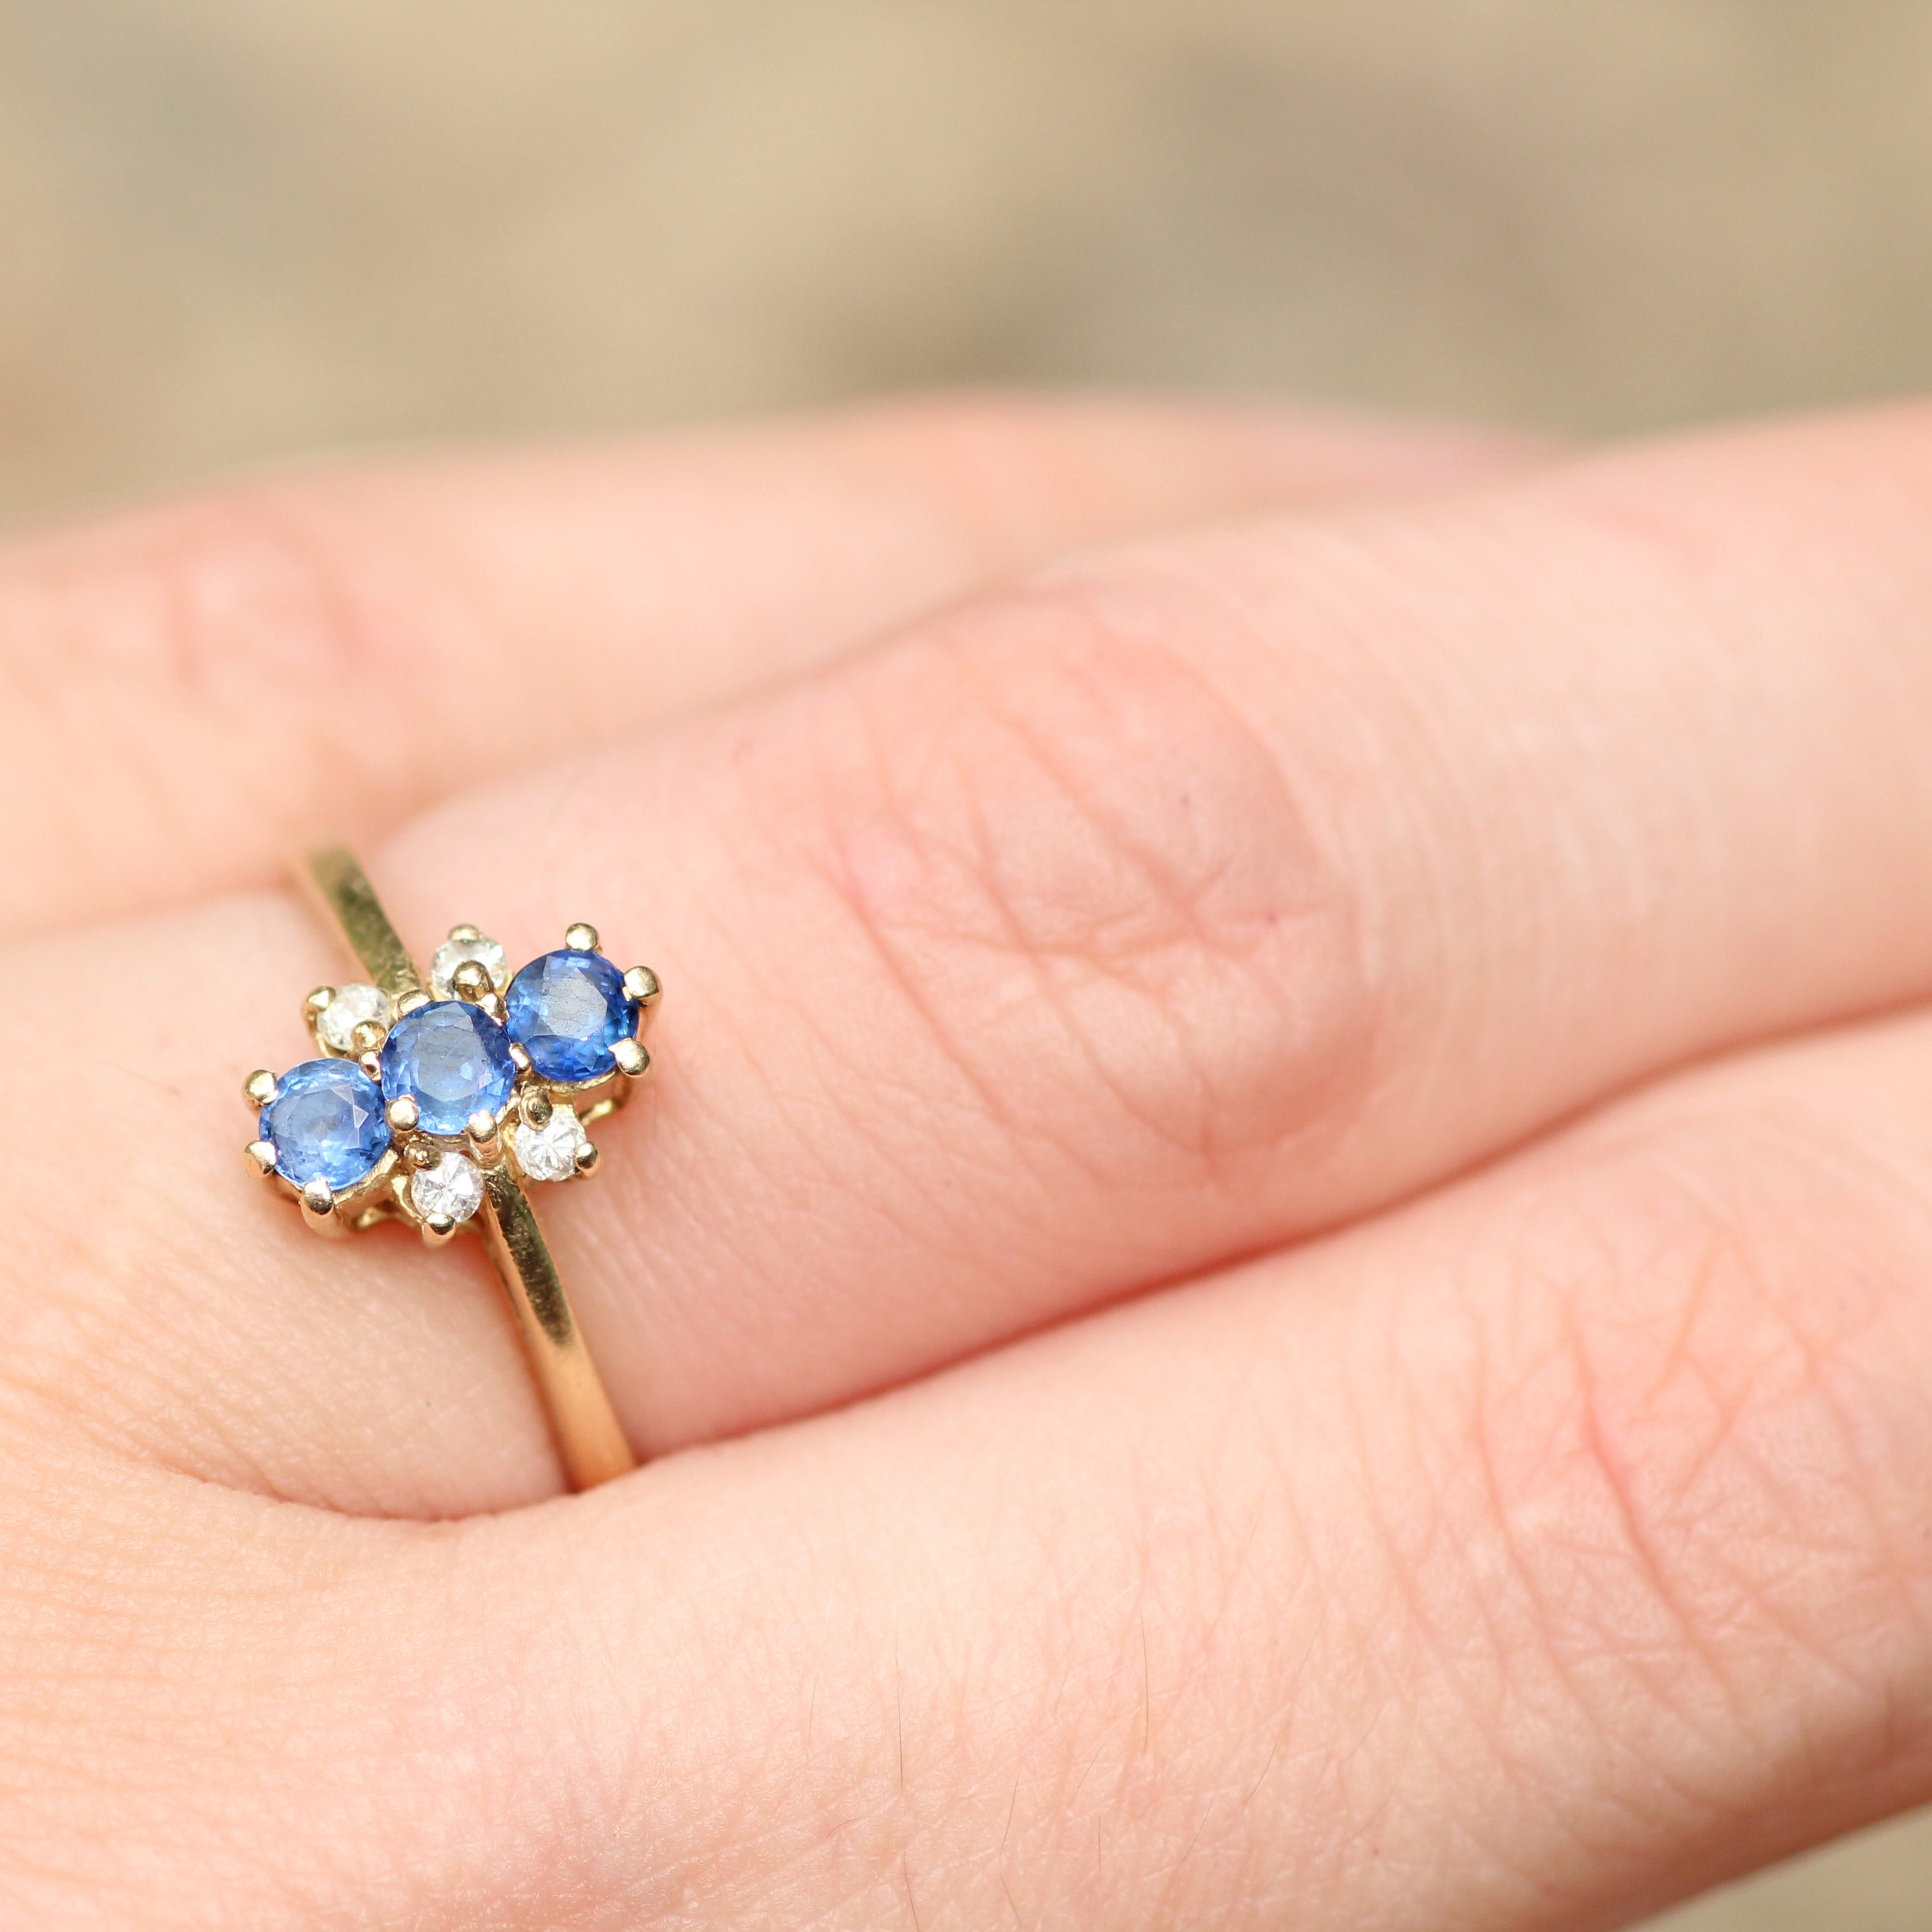 Vintage - Three sapphire and four diamond ring in 14k yellow gold